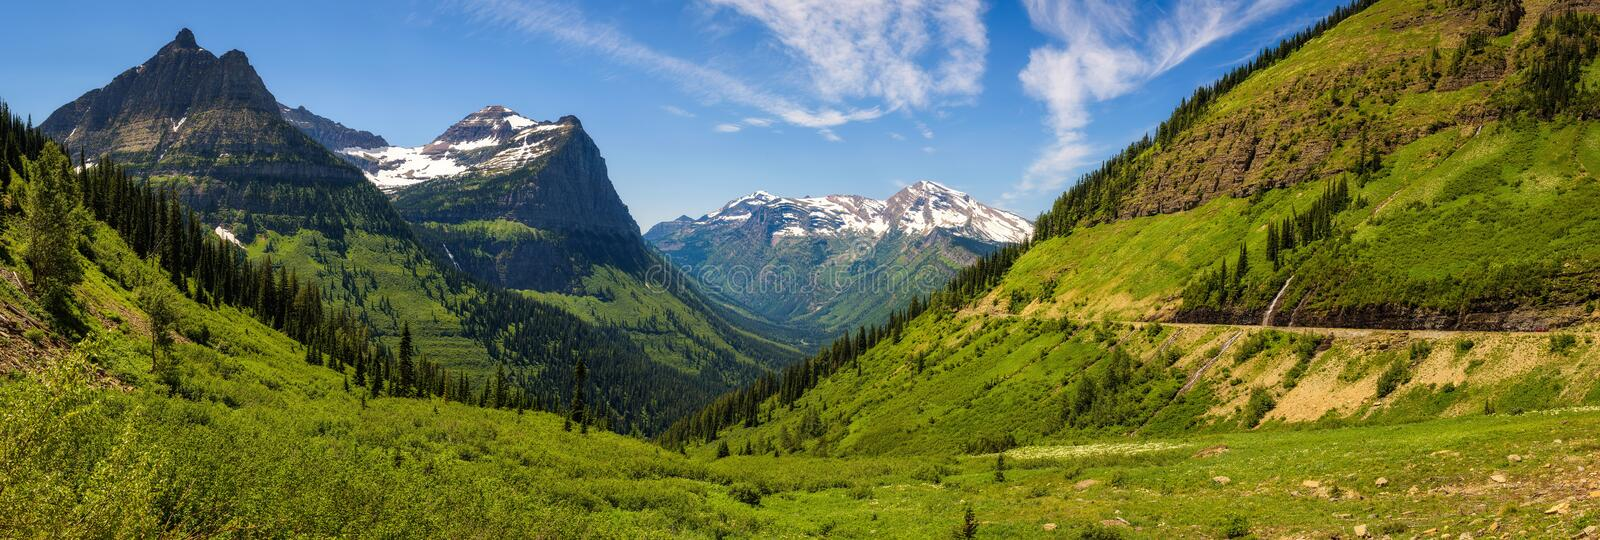 Panoramic view of Logan Pass in Glacier National Park, Montana stock photos